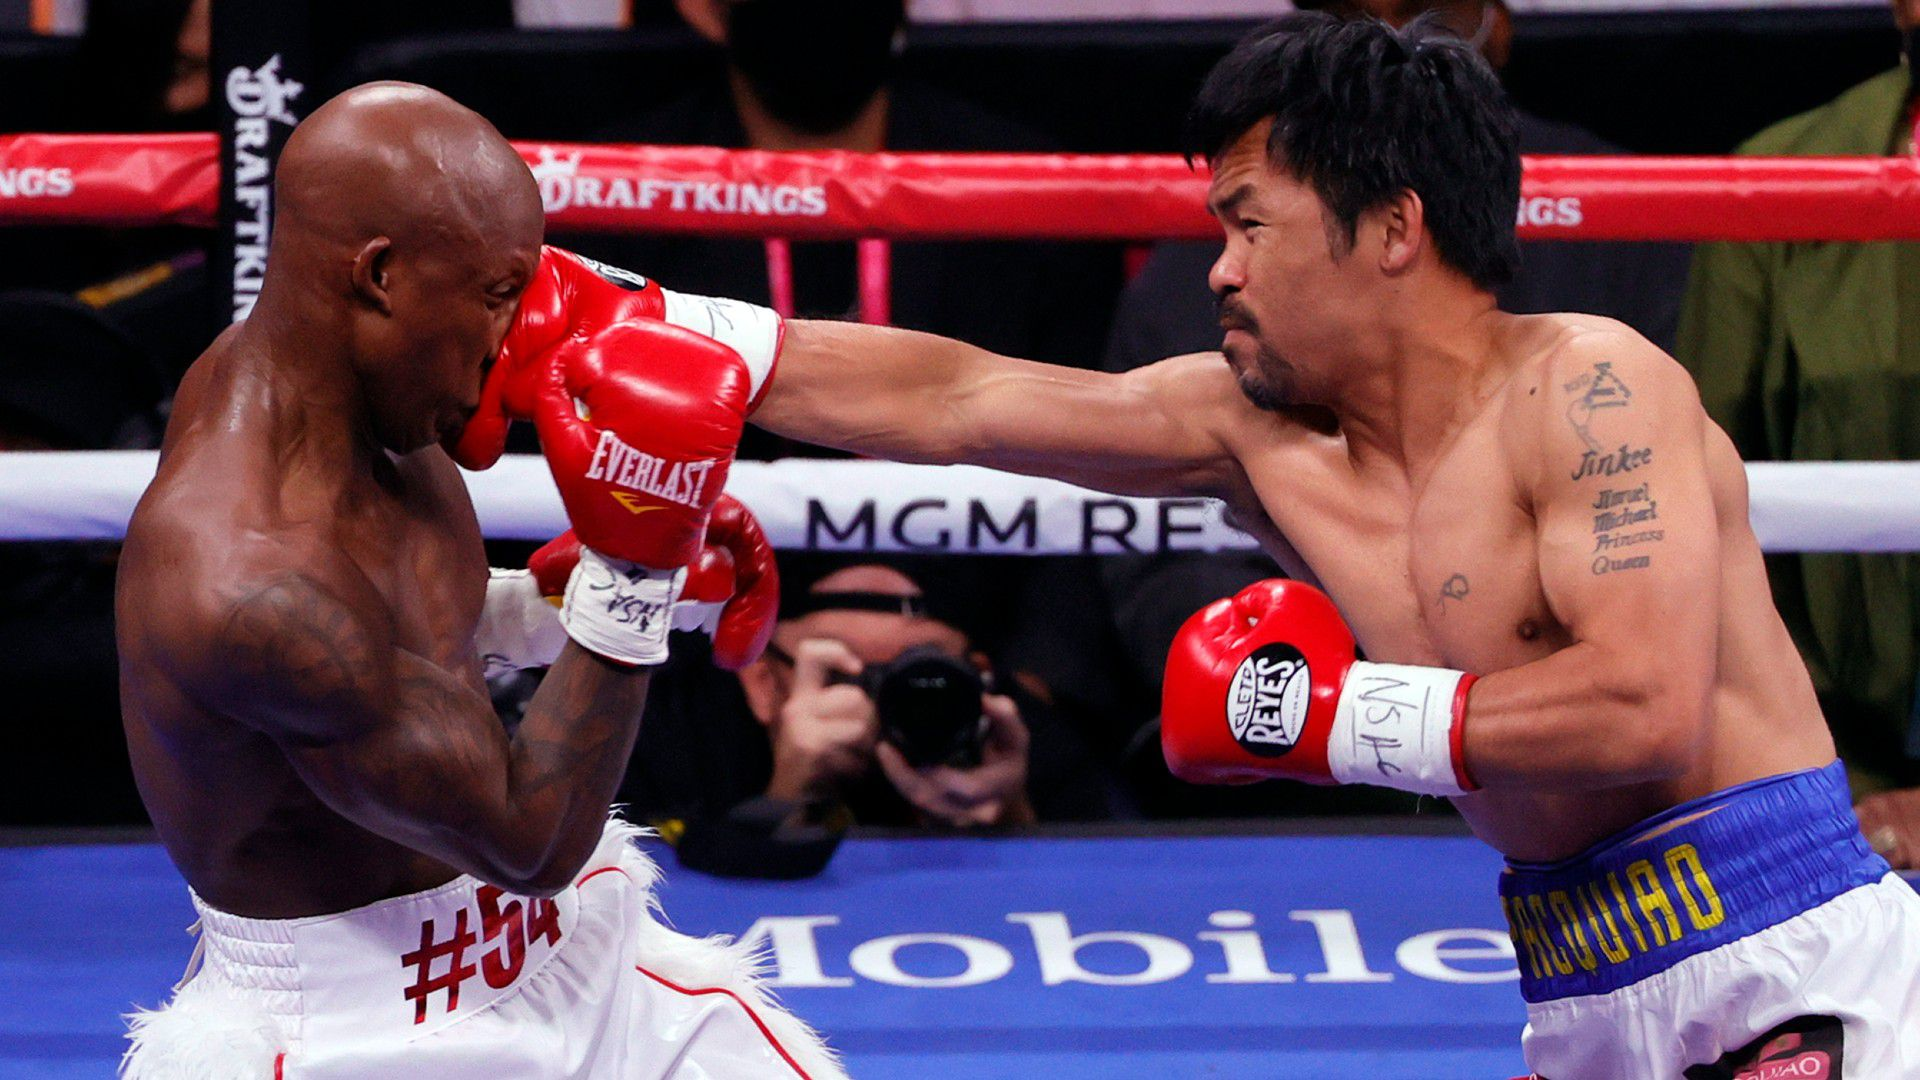 Manny Pacquiao's comeback fight ends in defeat